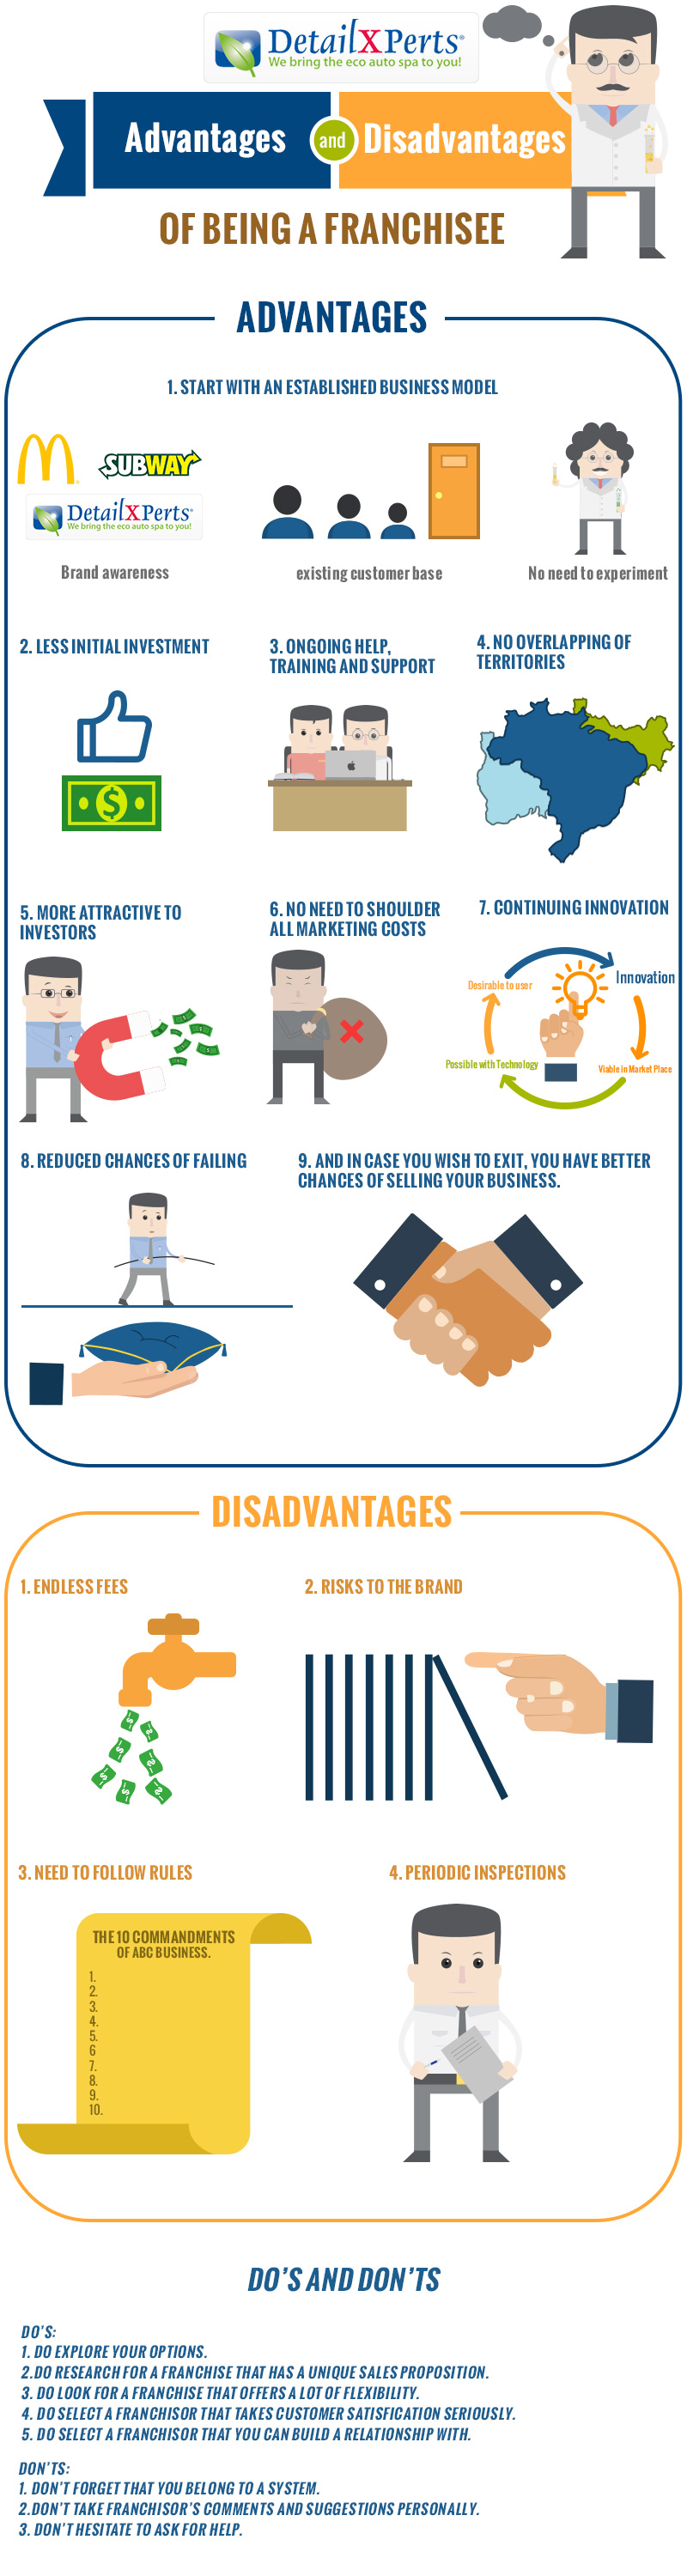 Advantages and Disadvantages of Being a Franchise